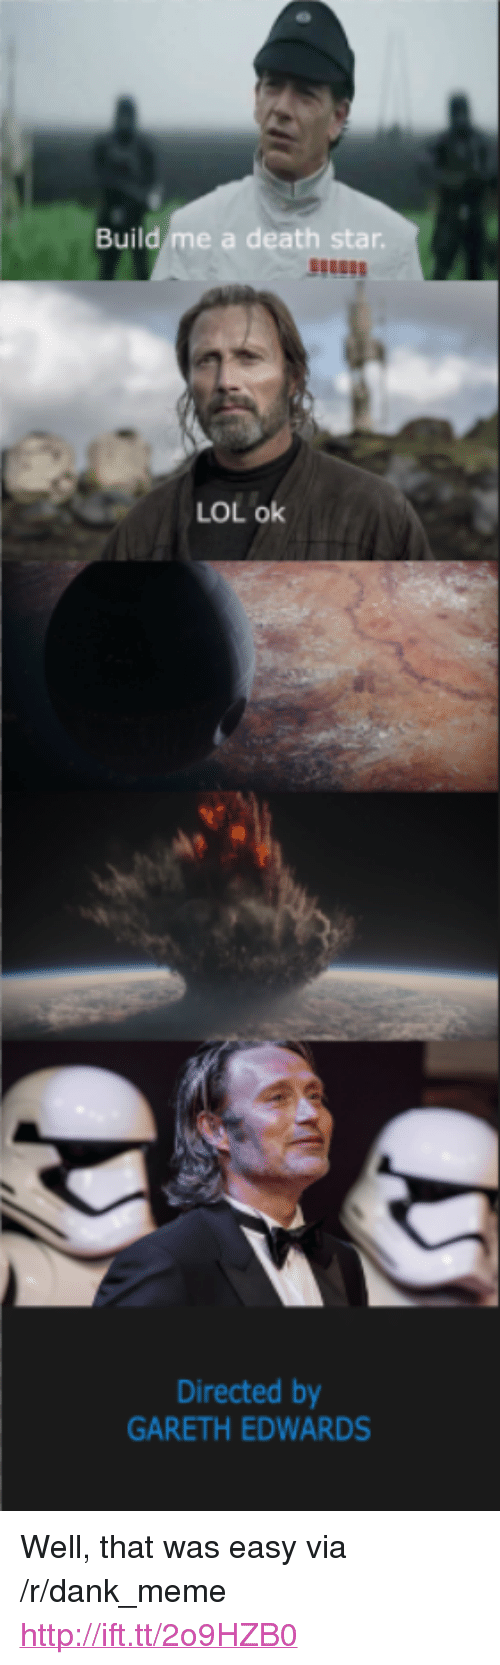 "That Was Easy: Build me a death star  LOL ok  Directed by  GARETH EDWARDS <p>Well, that was easy via /r/dank_meme <a href=""http://ift.tt/2o9HZB0"">http://ift.tt/2o9HZB0</a></p>"